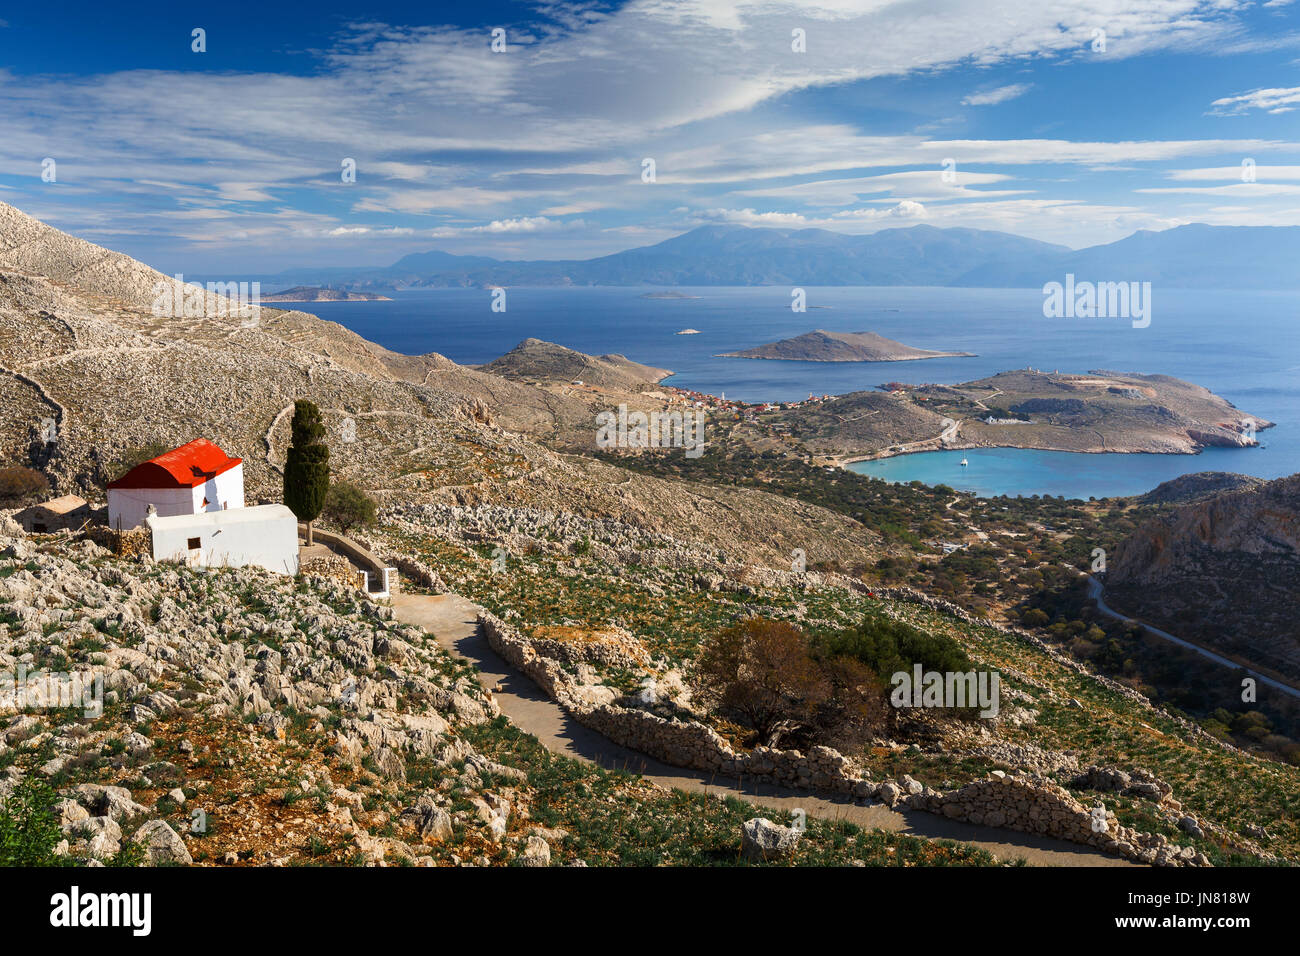 Church on a hilside on Halki island in Dodecanese archipelago, Greece. - Stock Image